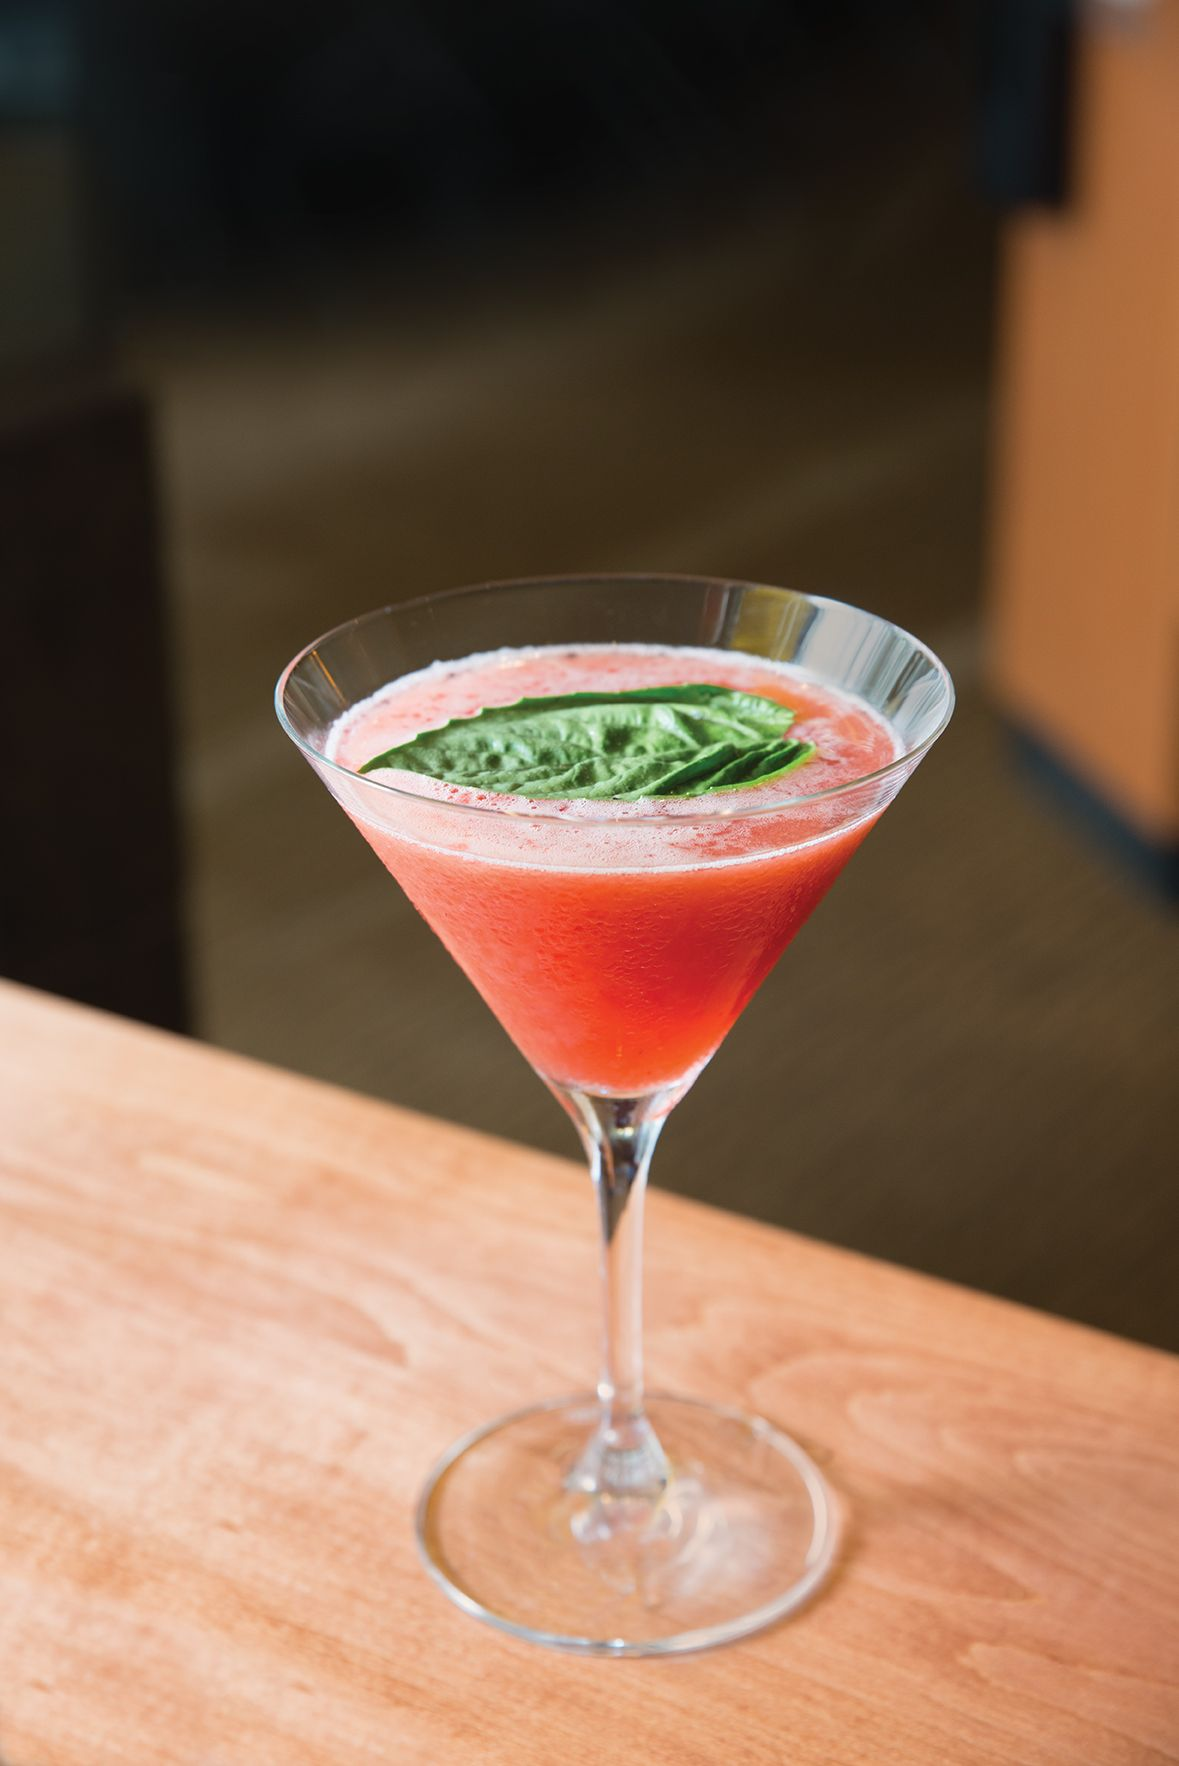 California Pizza Kitchen Palm Beach Gardens Cpks New Strawberry Basil Martini Come In And Try It Its